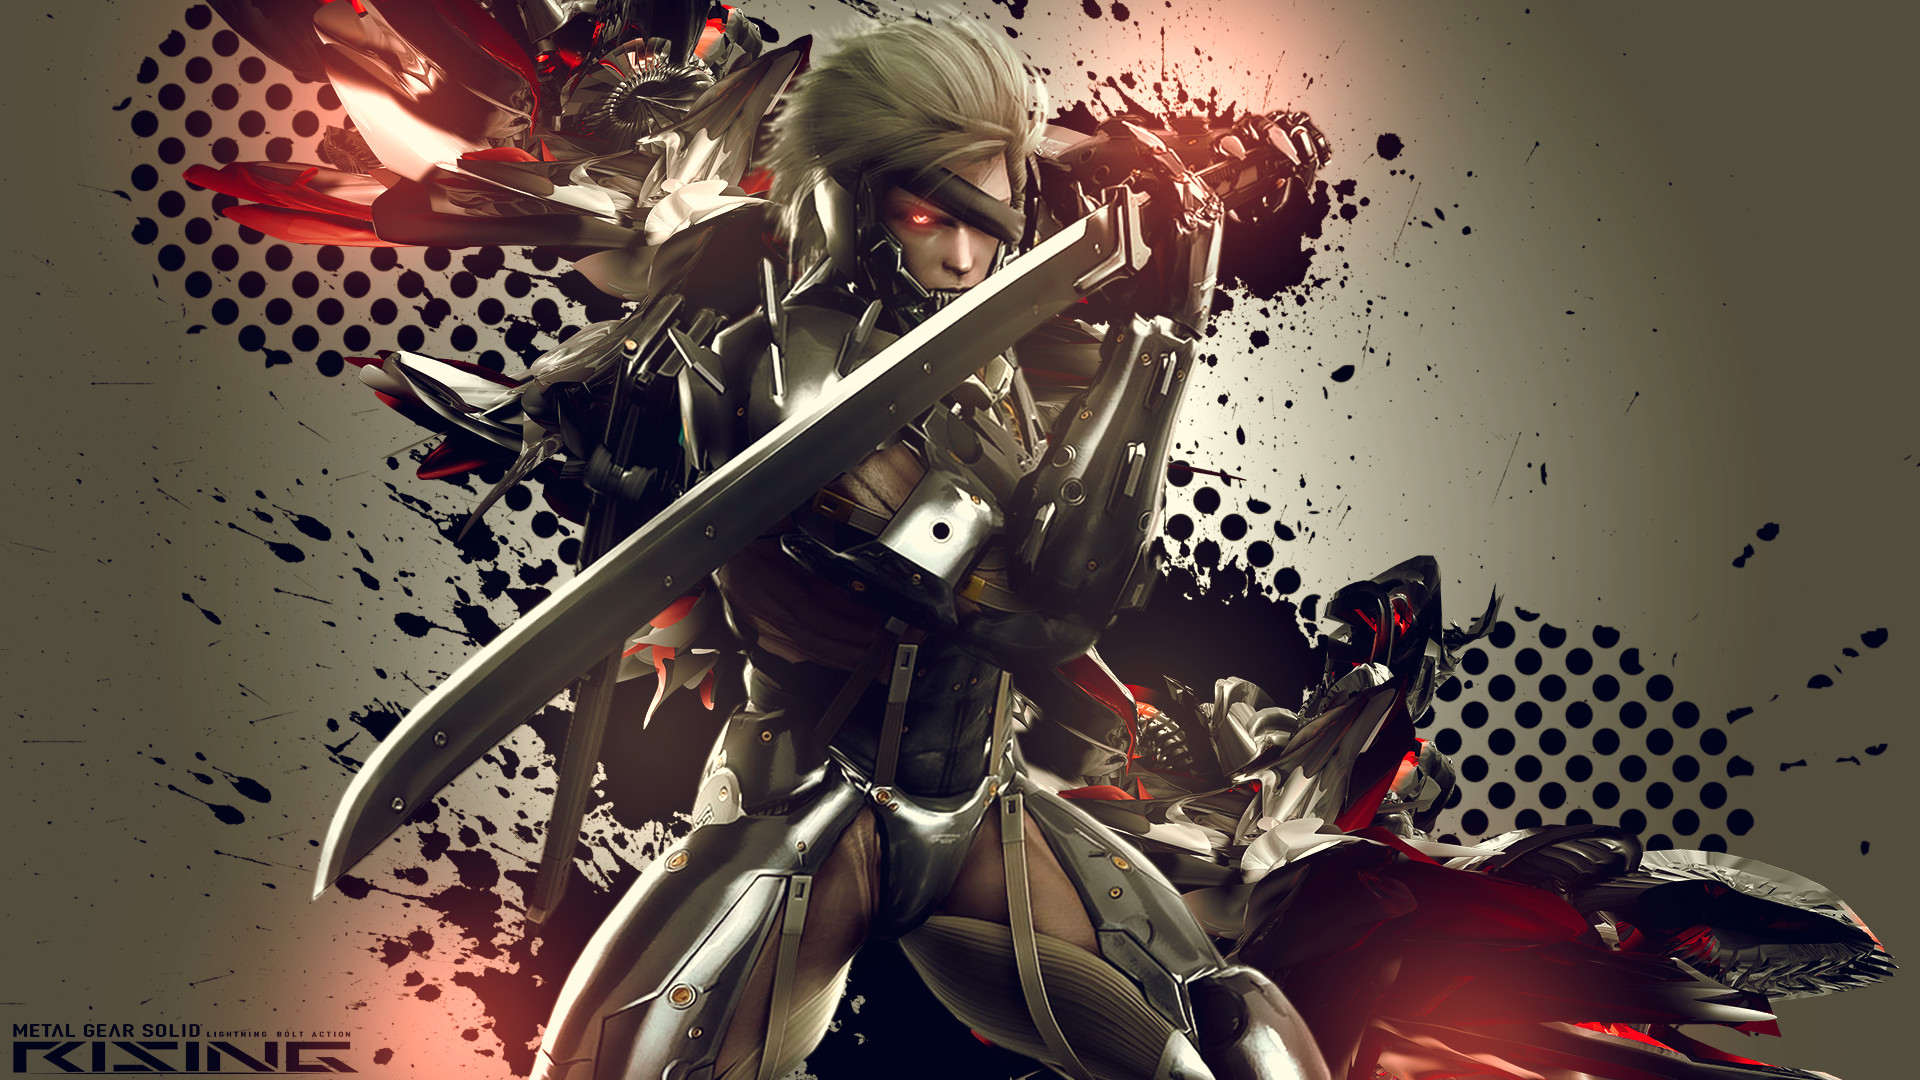 1920x1080 Metal Gear Rising Wallpapers Wide